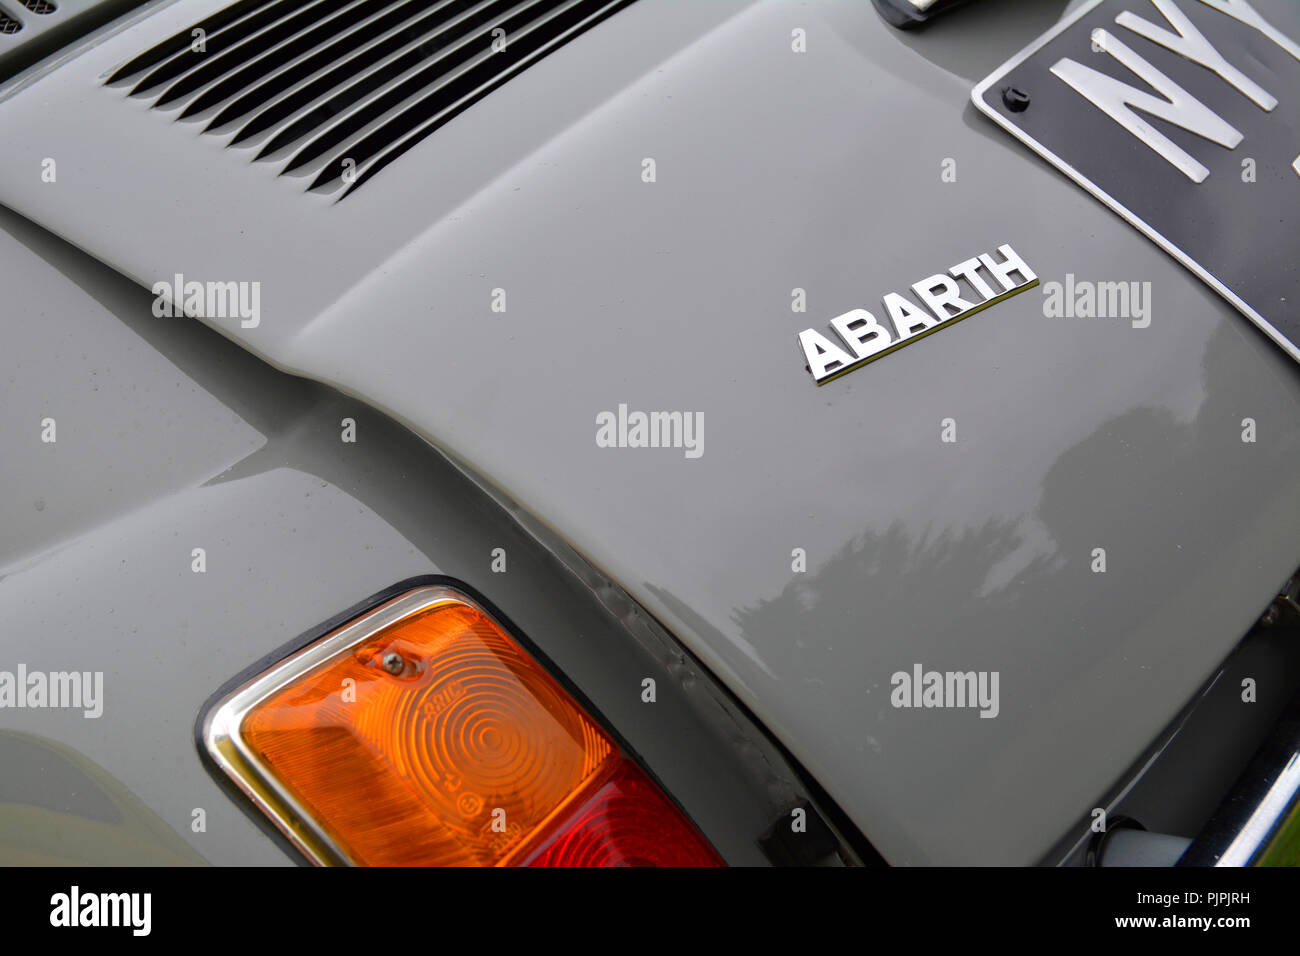 Close up picture of a classic Abarth Fiat 500 car - Stock Image